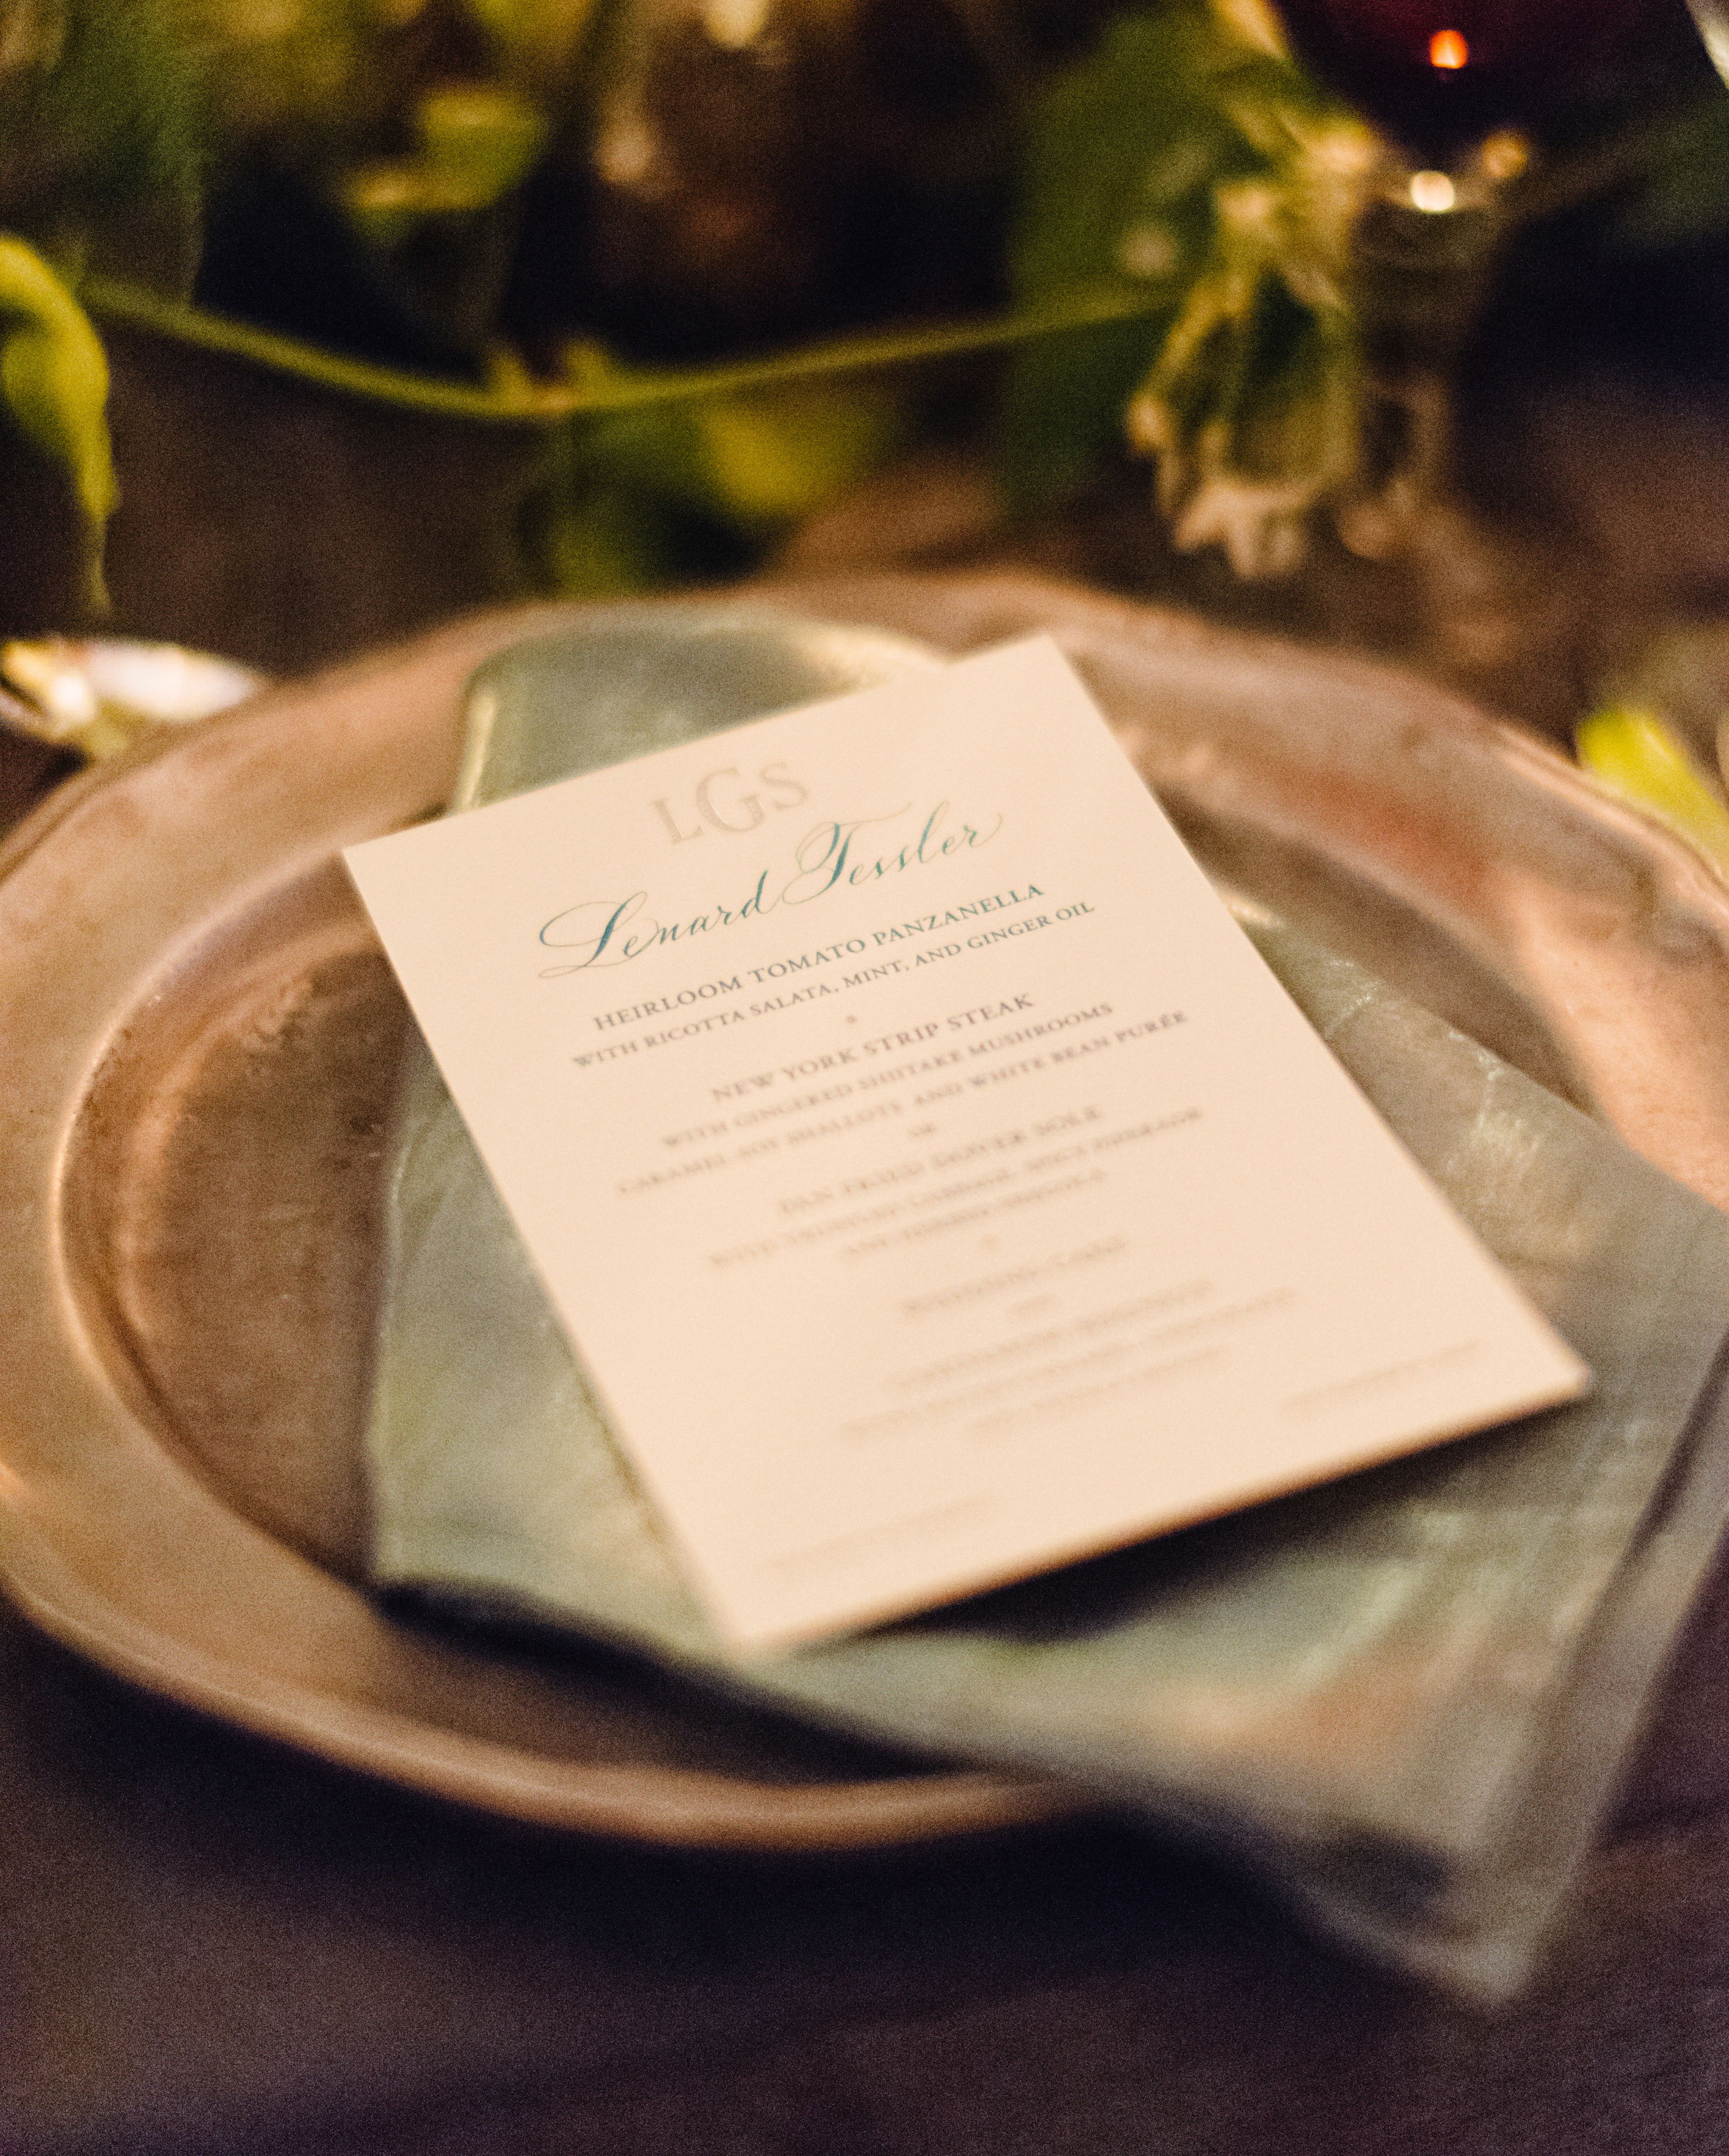 lilly-sean-wedding-placesetting-00515-s112089-0815.jpg